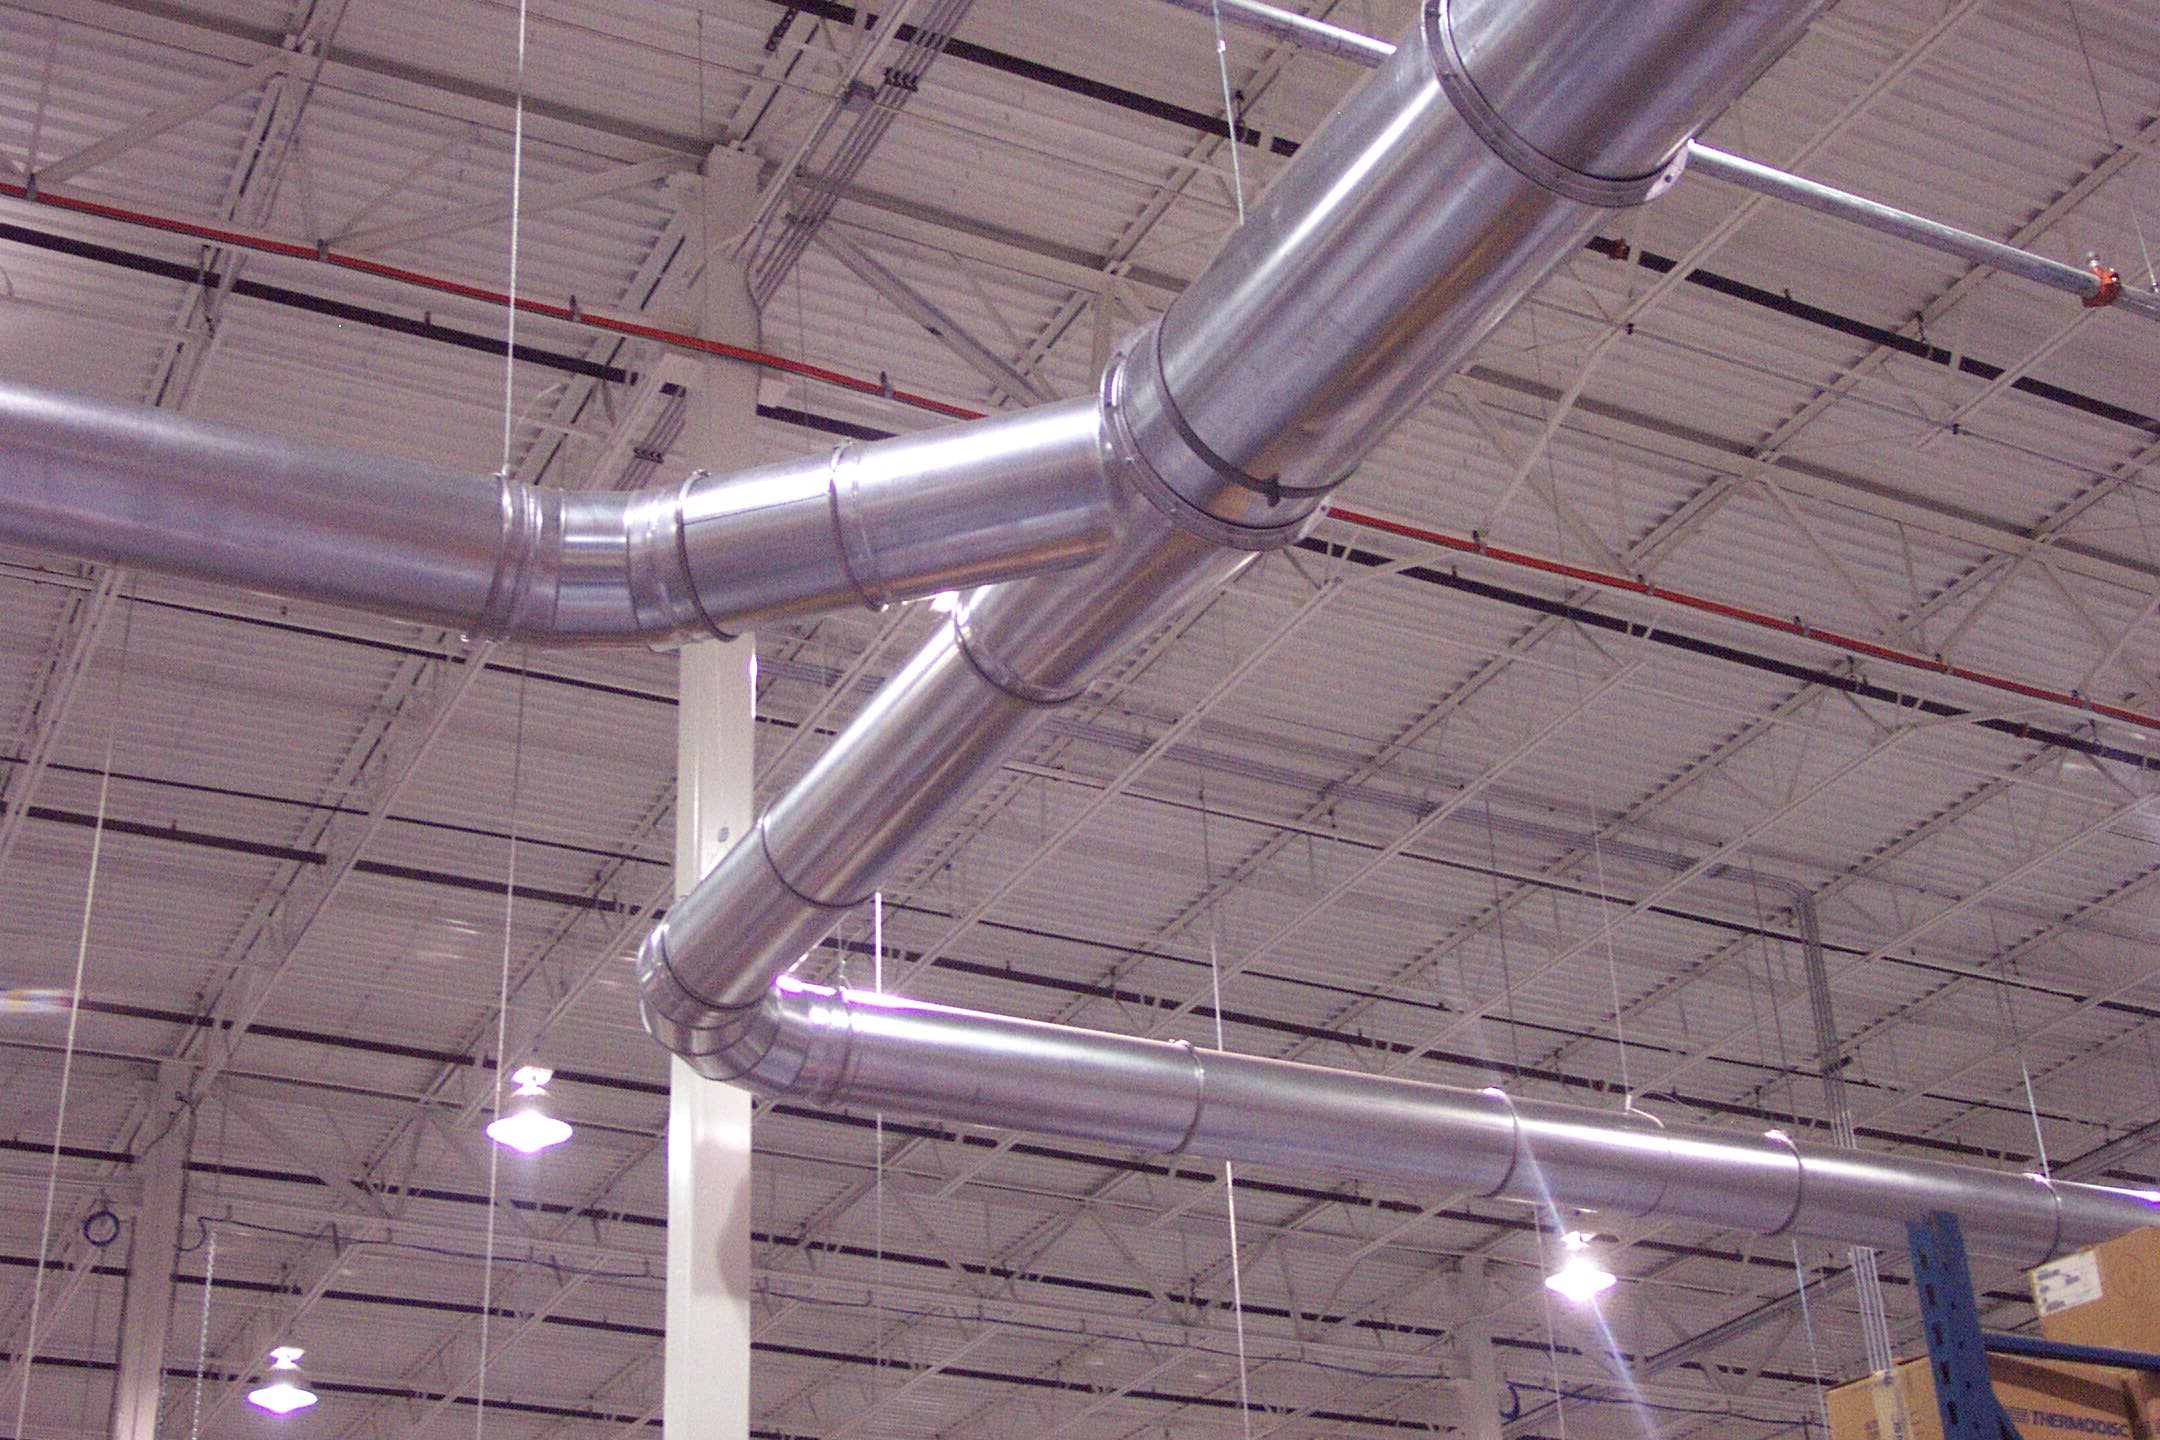 Ductwork Heating And Diy Heating Home Plan For Homeowners. #815D4A